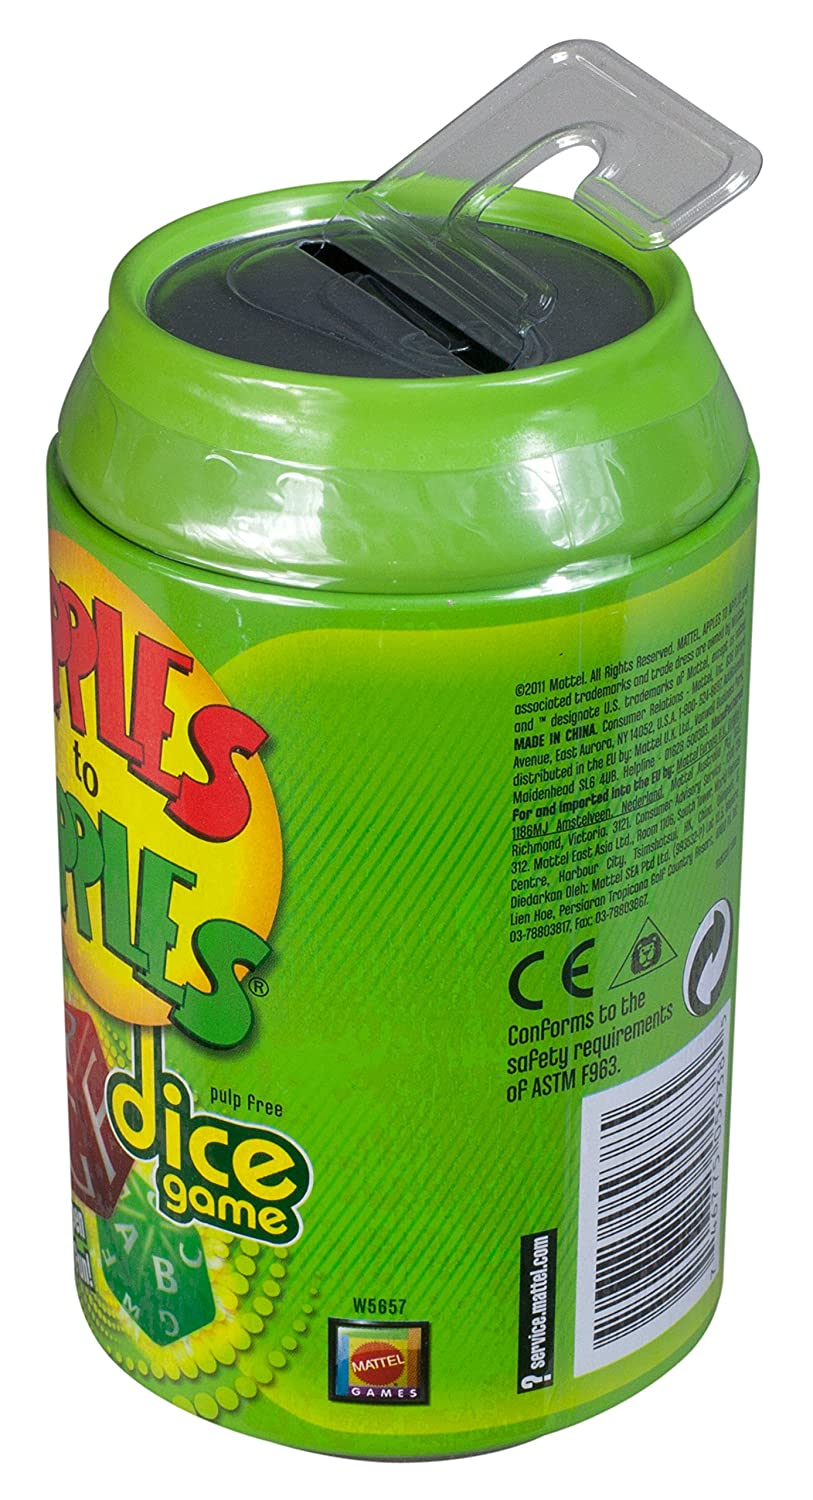 Apples to Apples Dice Game Mattel W5657